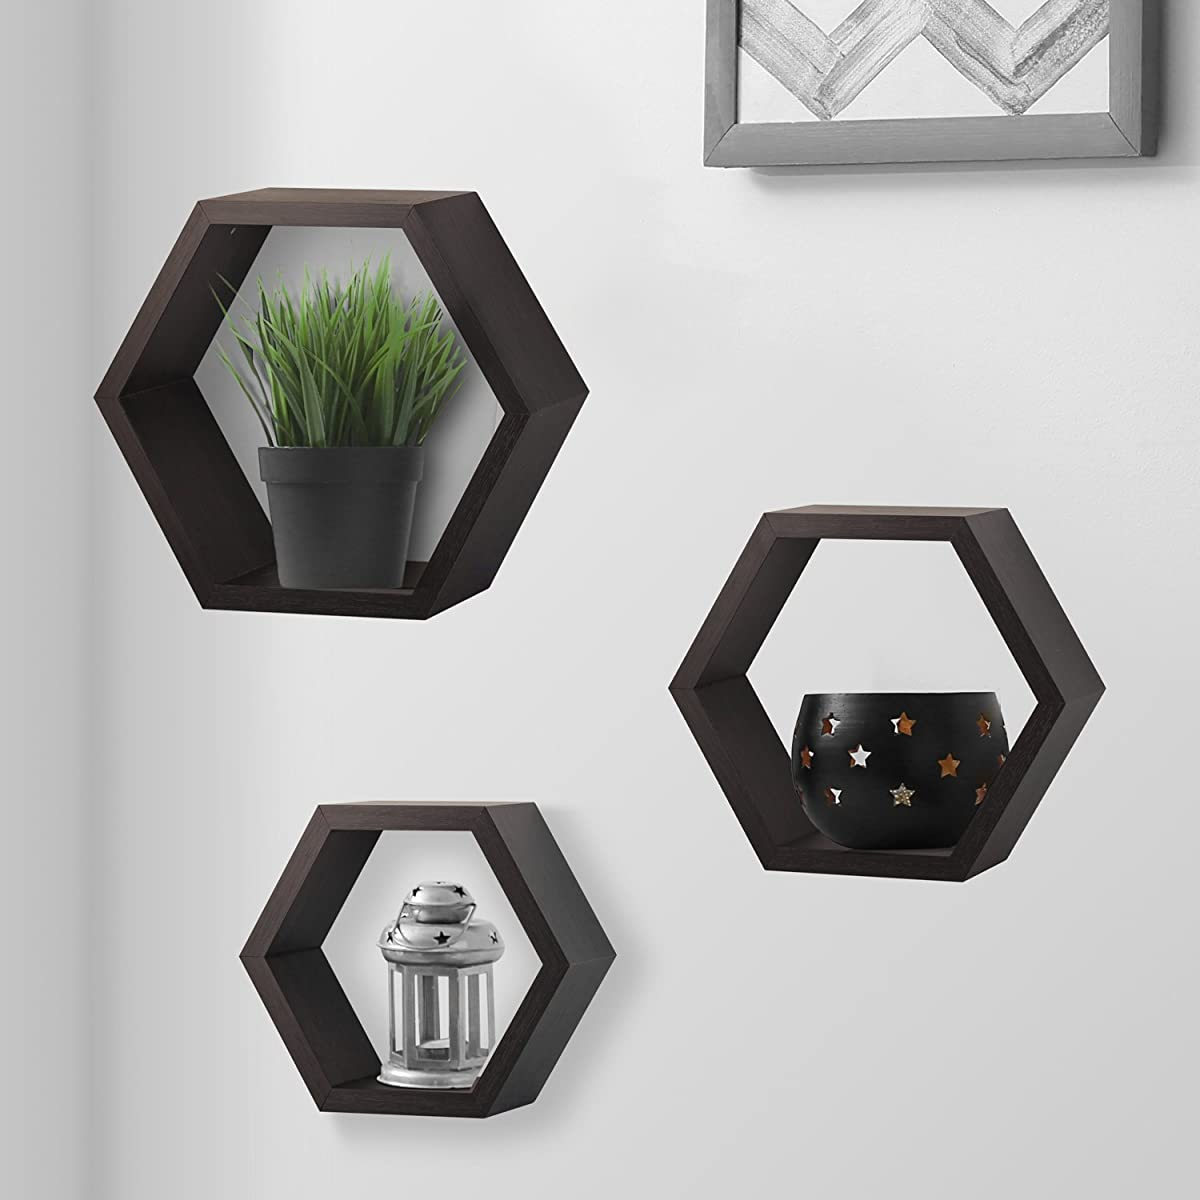 Halter Hexagonal Shaped Floating Shelves (Brown) For Wall/Room Decorative Display - Set of Three - Easy Installation,Screws & Hardware Included - Wood Veneer